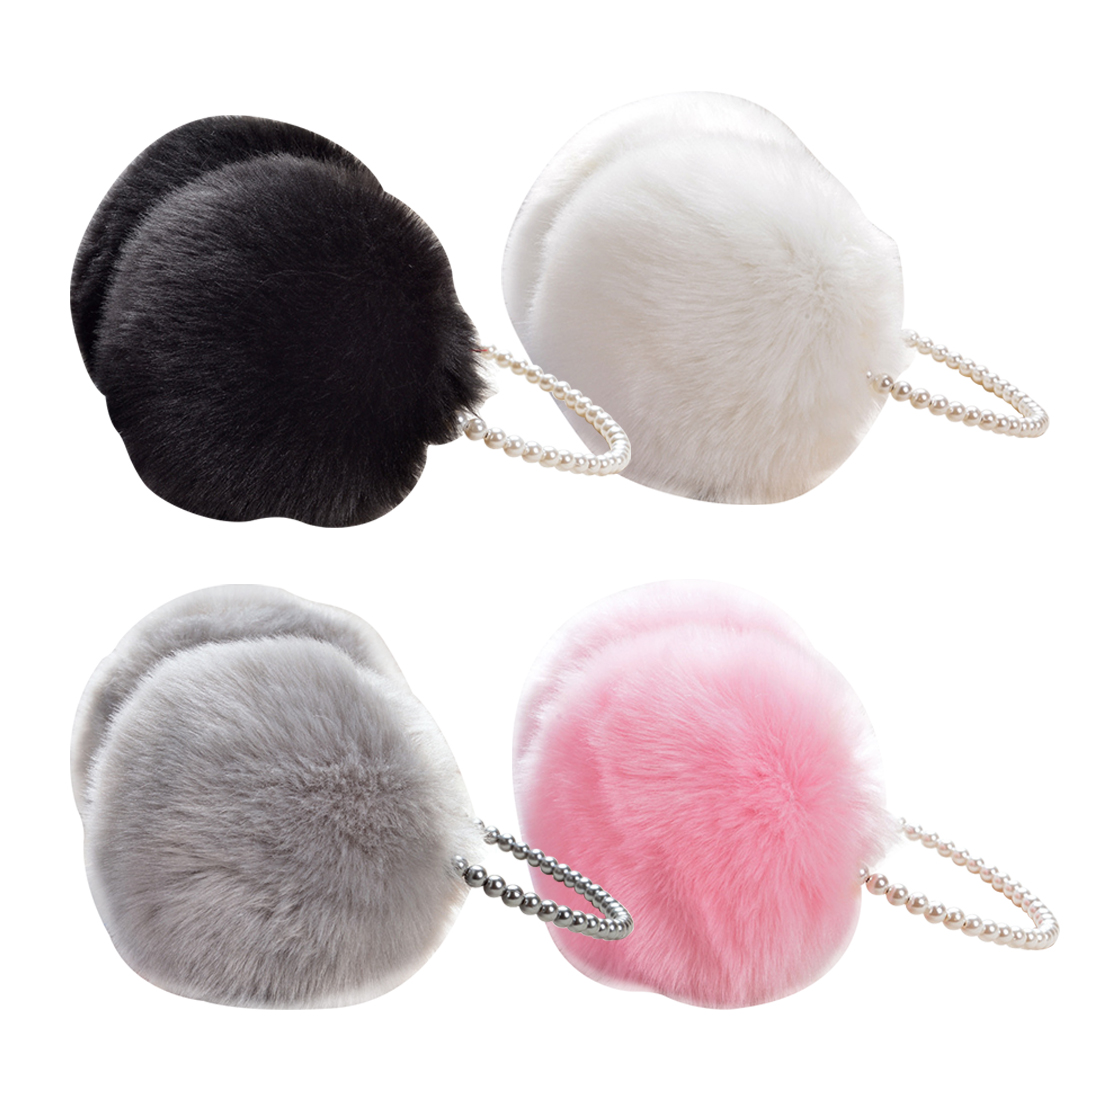 Charming Fashion Rabbit Fur Earmuffs Ear Muffs Ear Warmers Earmuffs Winter Outdoor Women Christmas Gifts